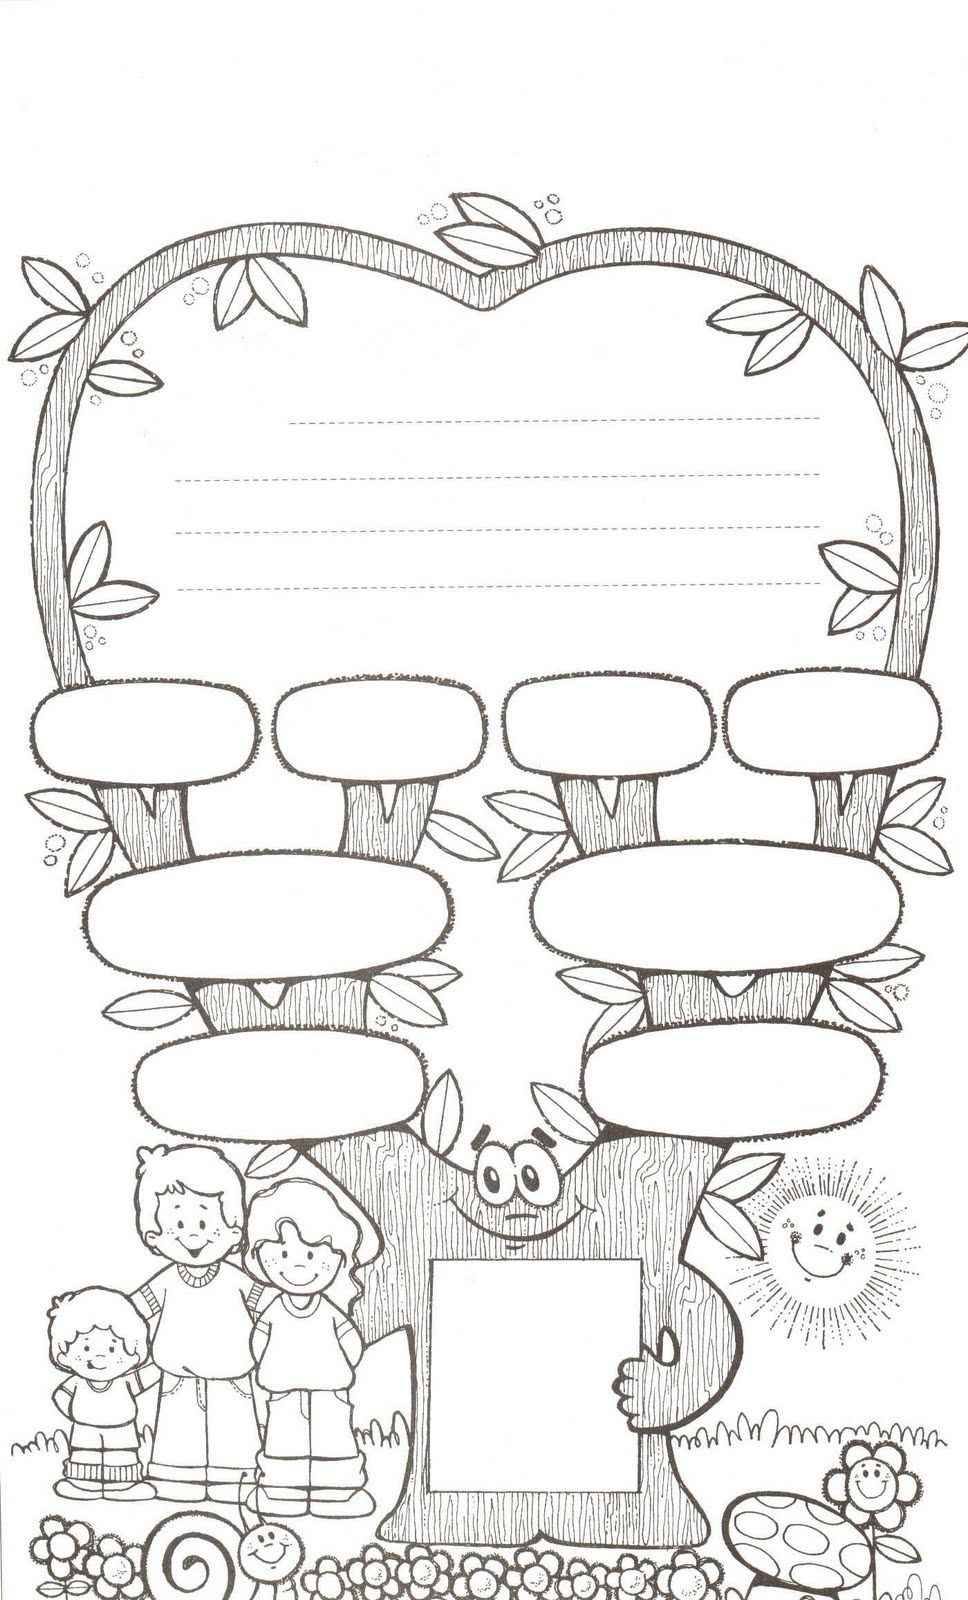 Printables Family Tree Worksheet For Kids 1000 images about family printables on pinterest tree worksheet image search and activities